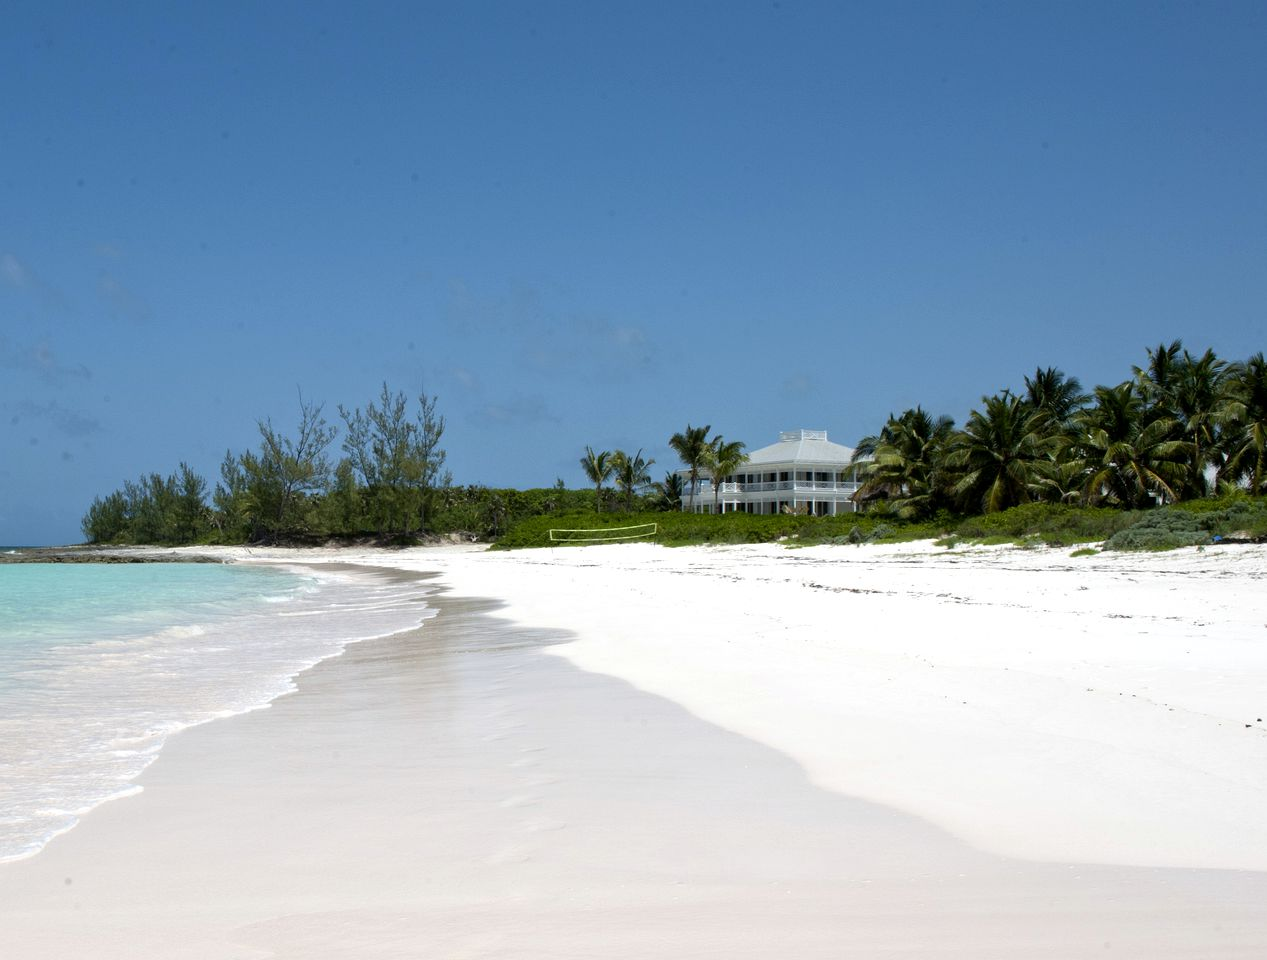 Beach Houses (Governor's Harbour, North Eleuthera, Bahamas)